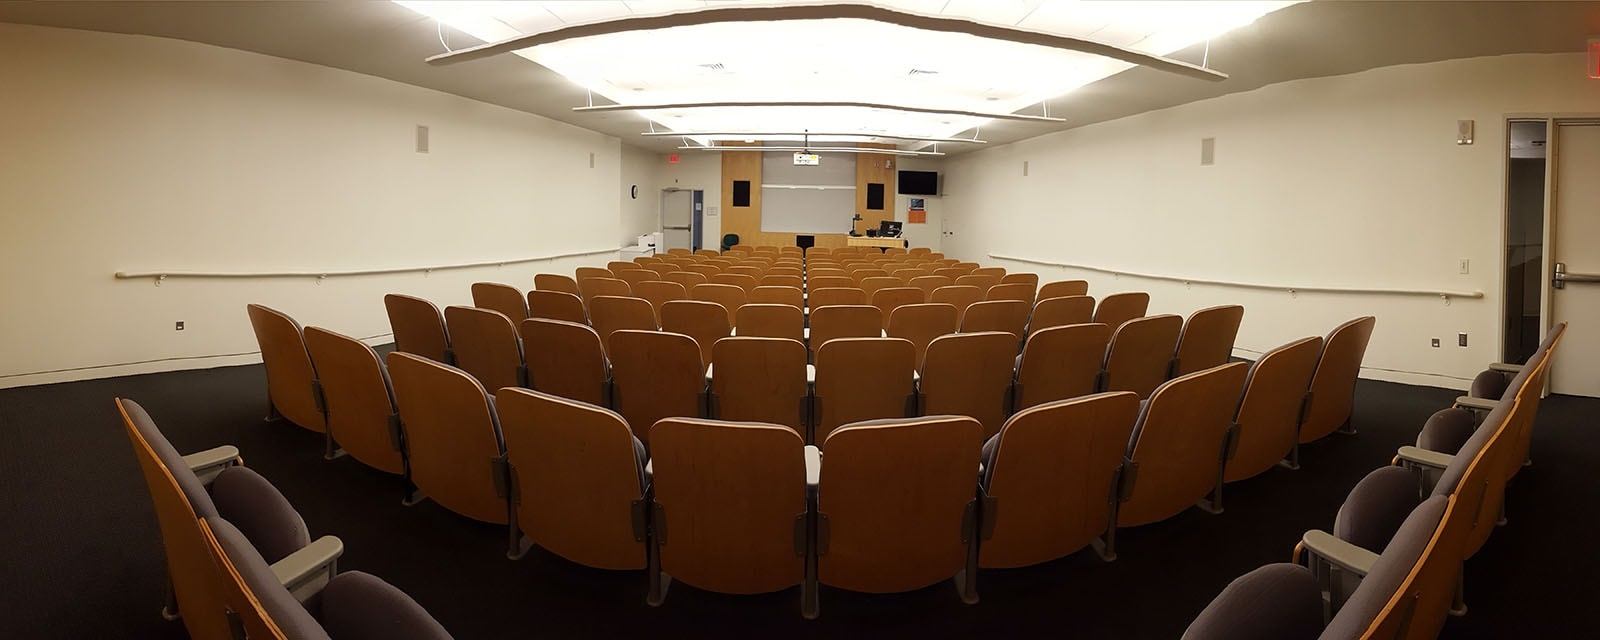 Panorama of Newhouse 3 141 from rear of room movable chairs, teaching station front left